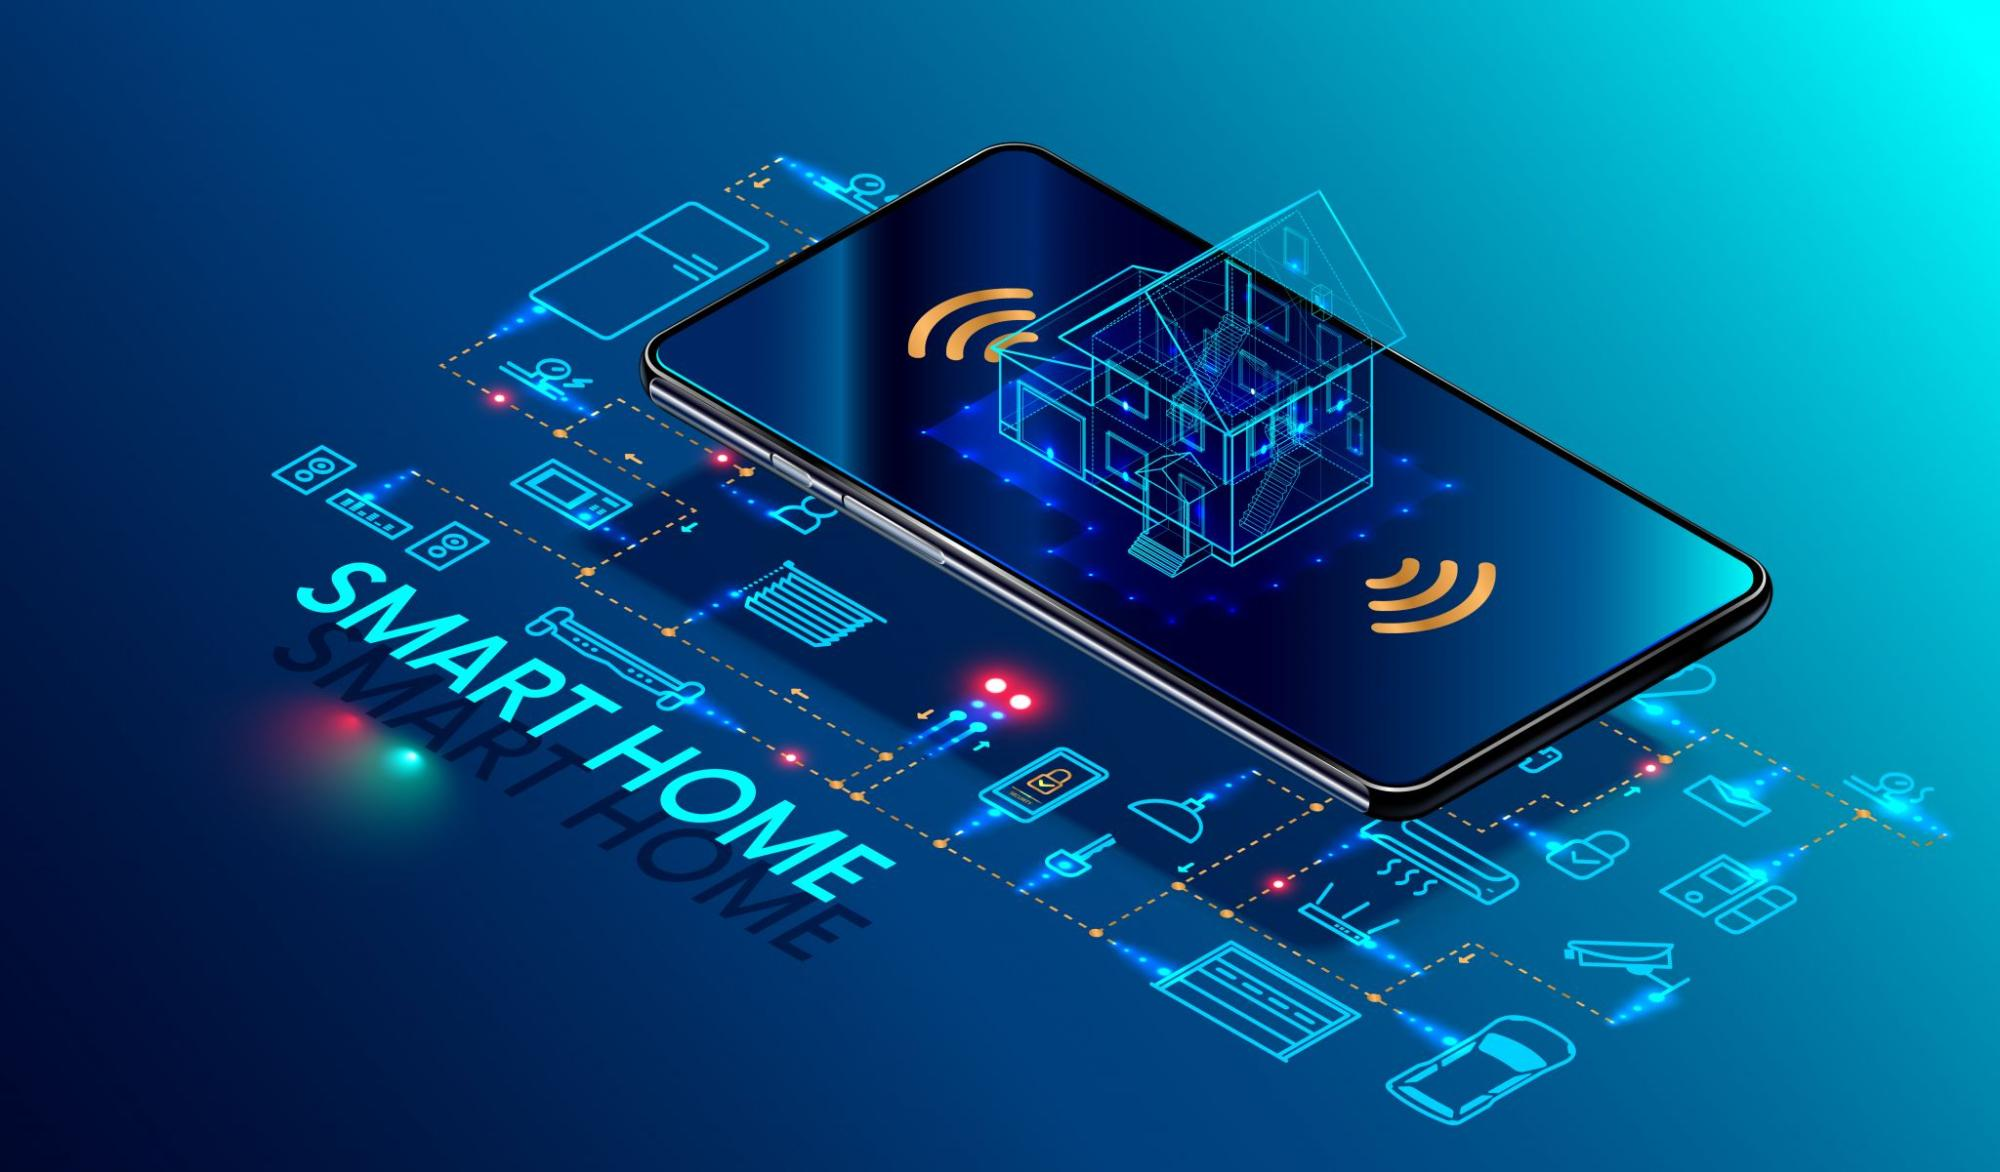 What does an expert say about Advance home automation and service?